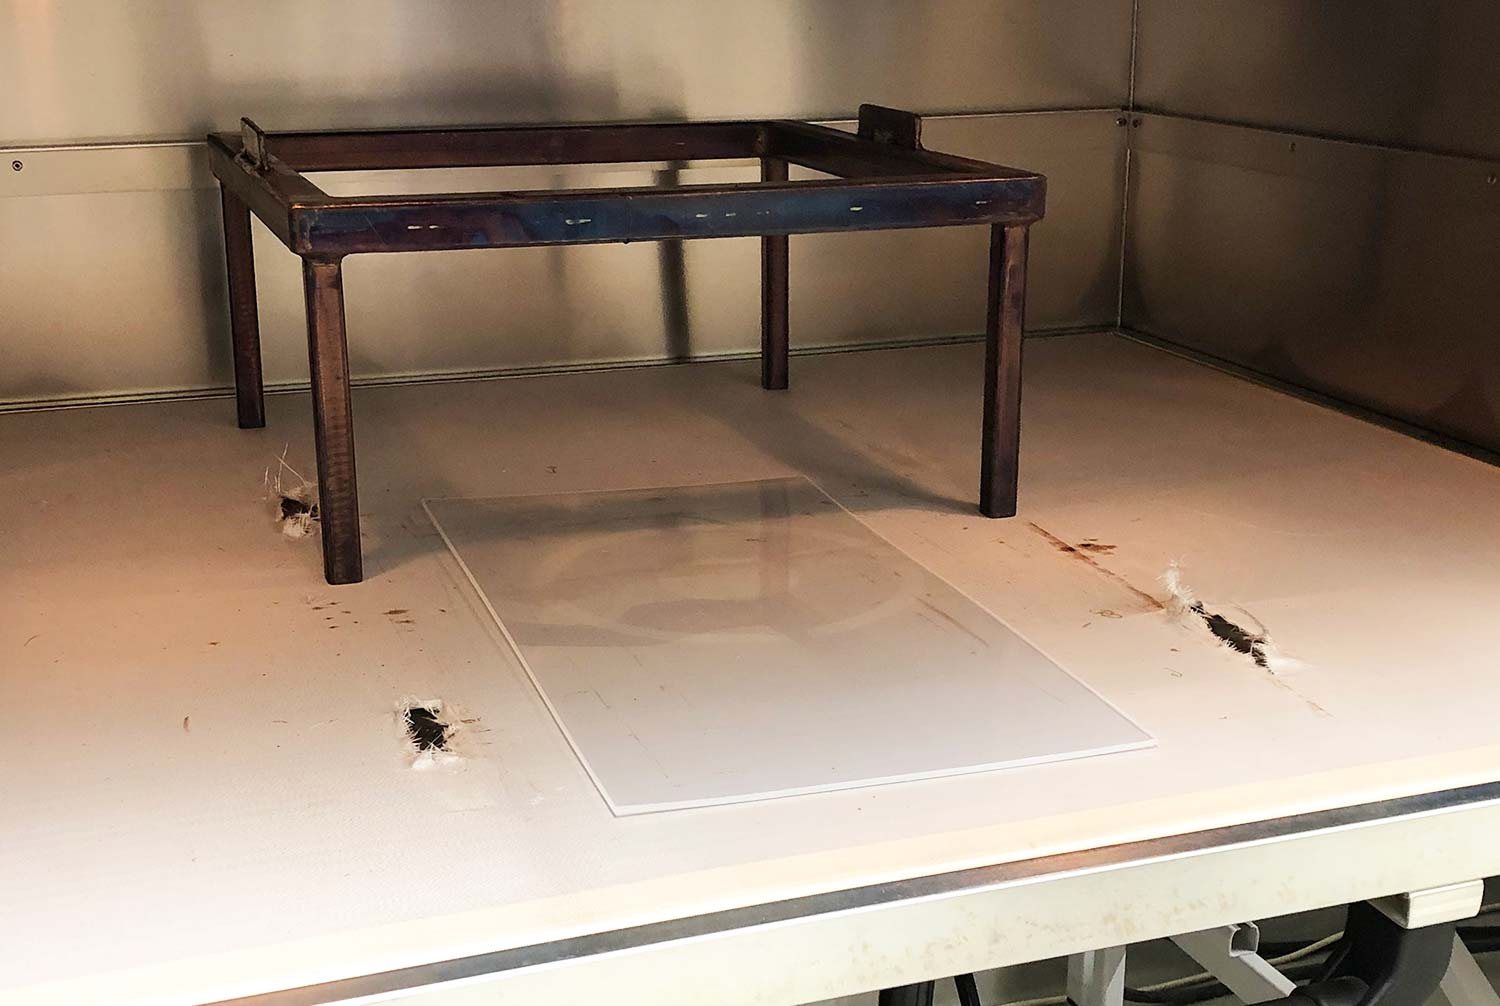 Heating high-temperature thermoplastic sheet in infrared oven